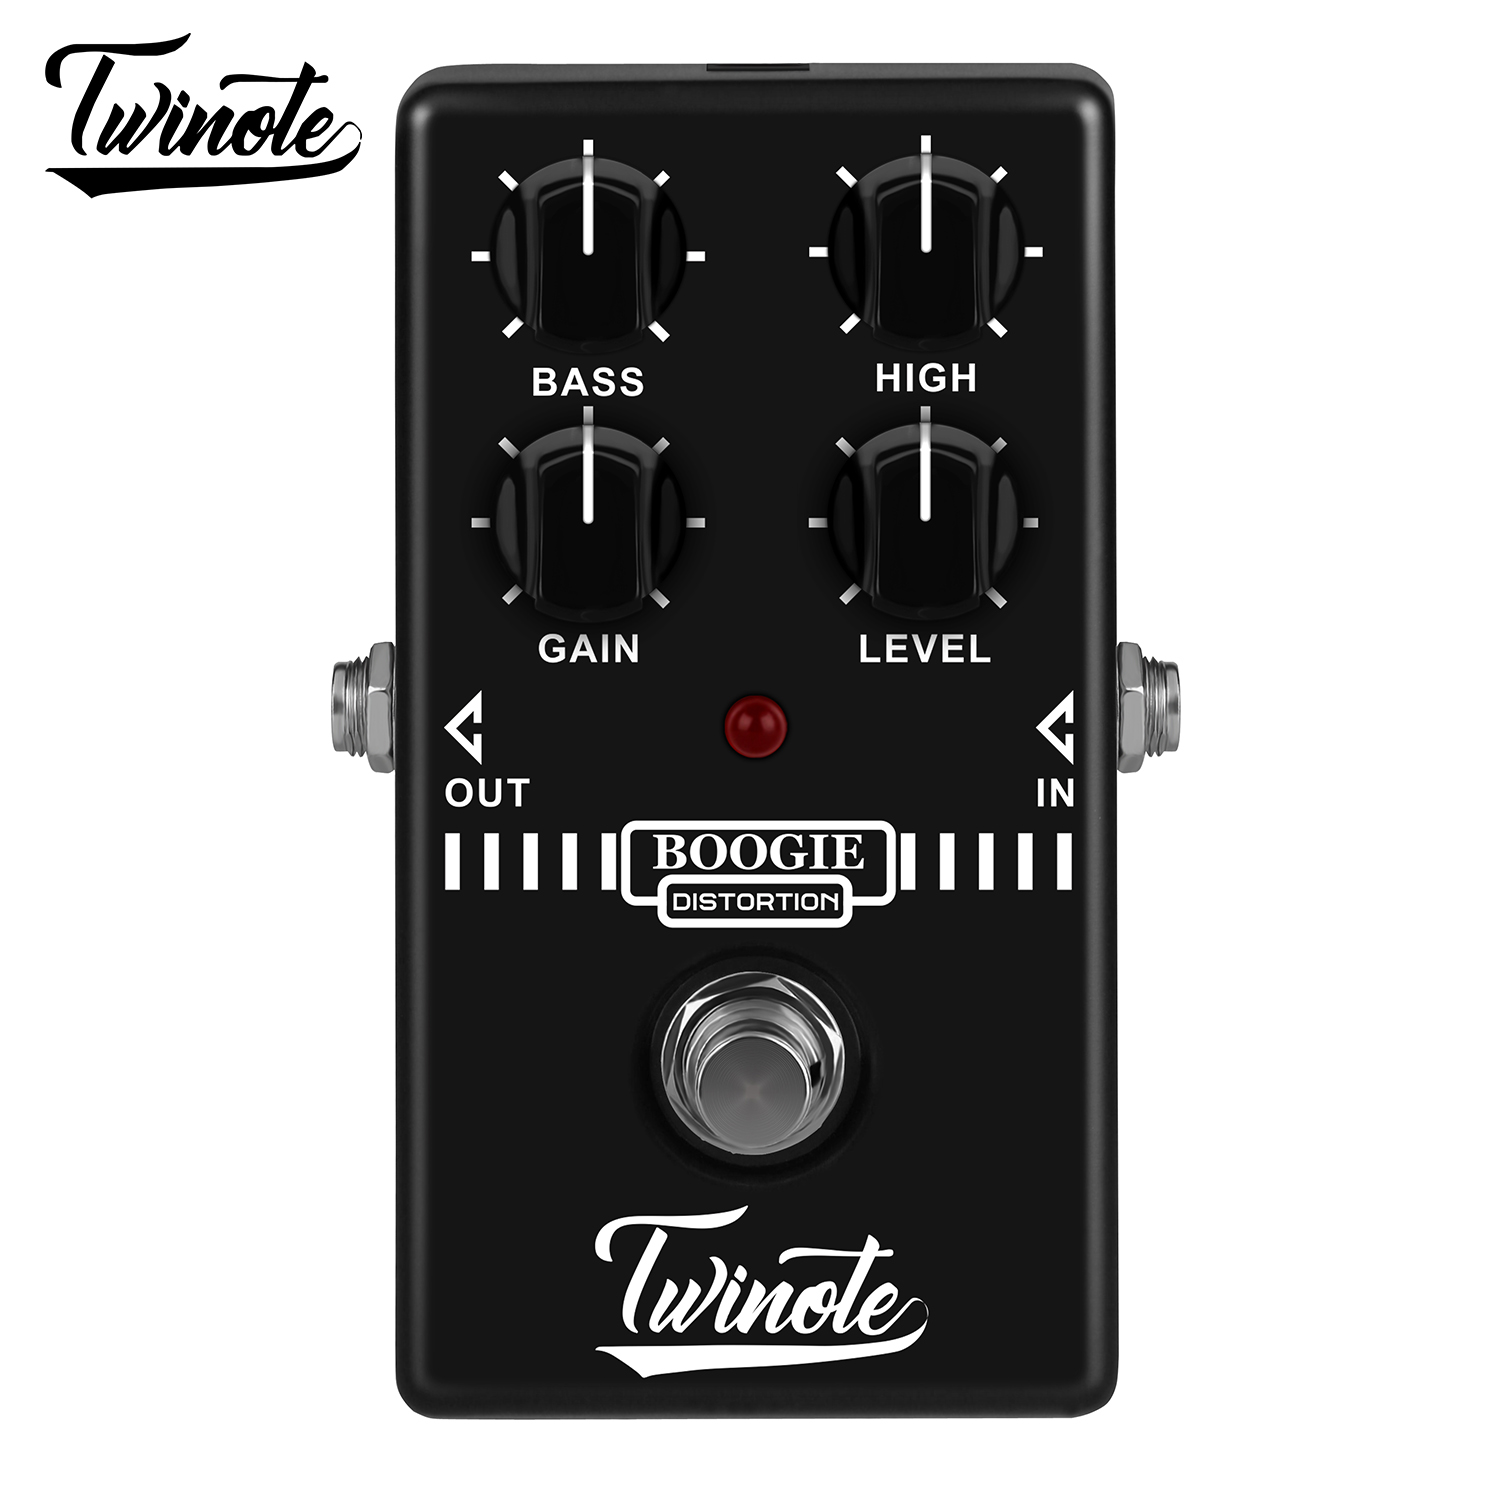 twinote boogie dist electric guitar effects pedal amp simulator guitar accessories old school. Black Bedroom Furniture Sets. Home Design Ideas